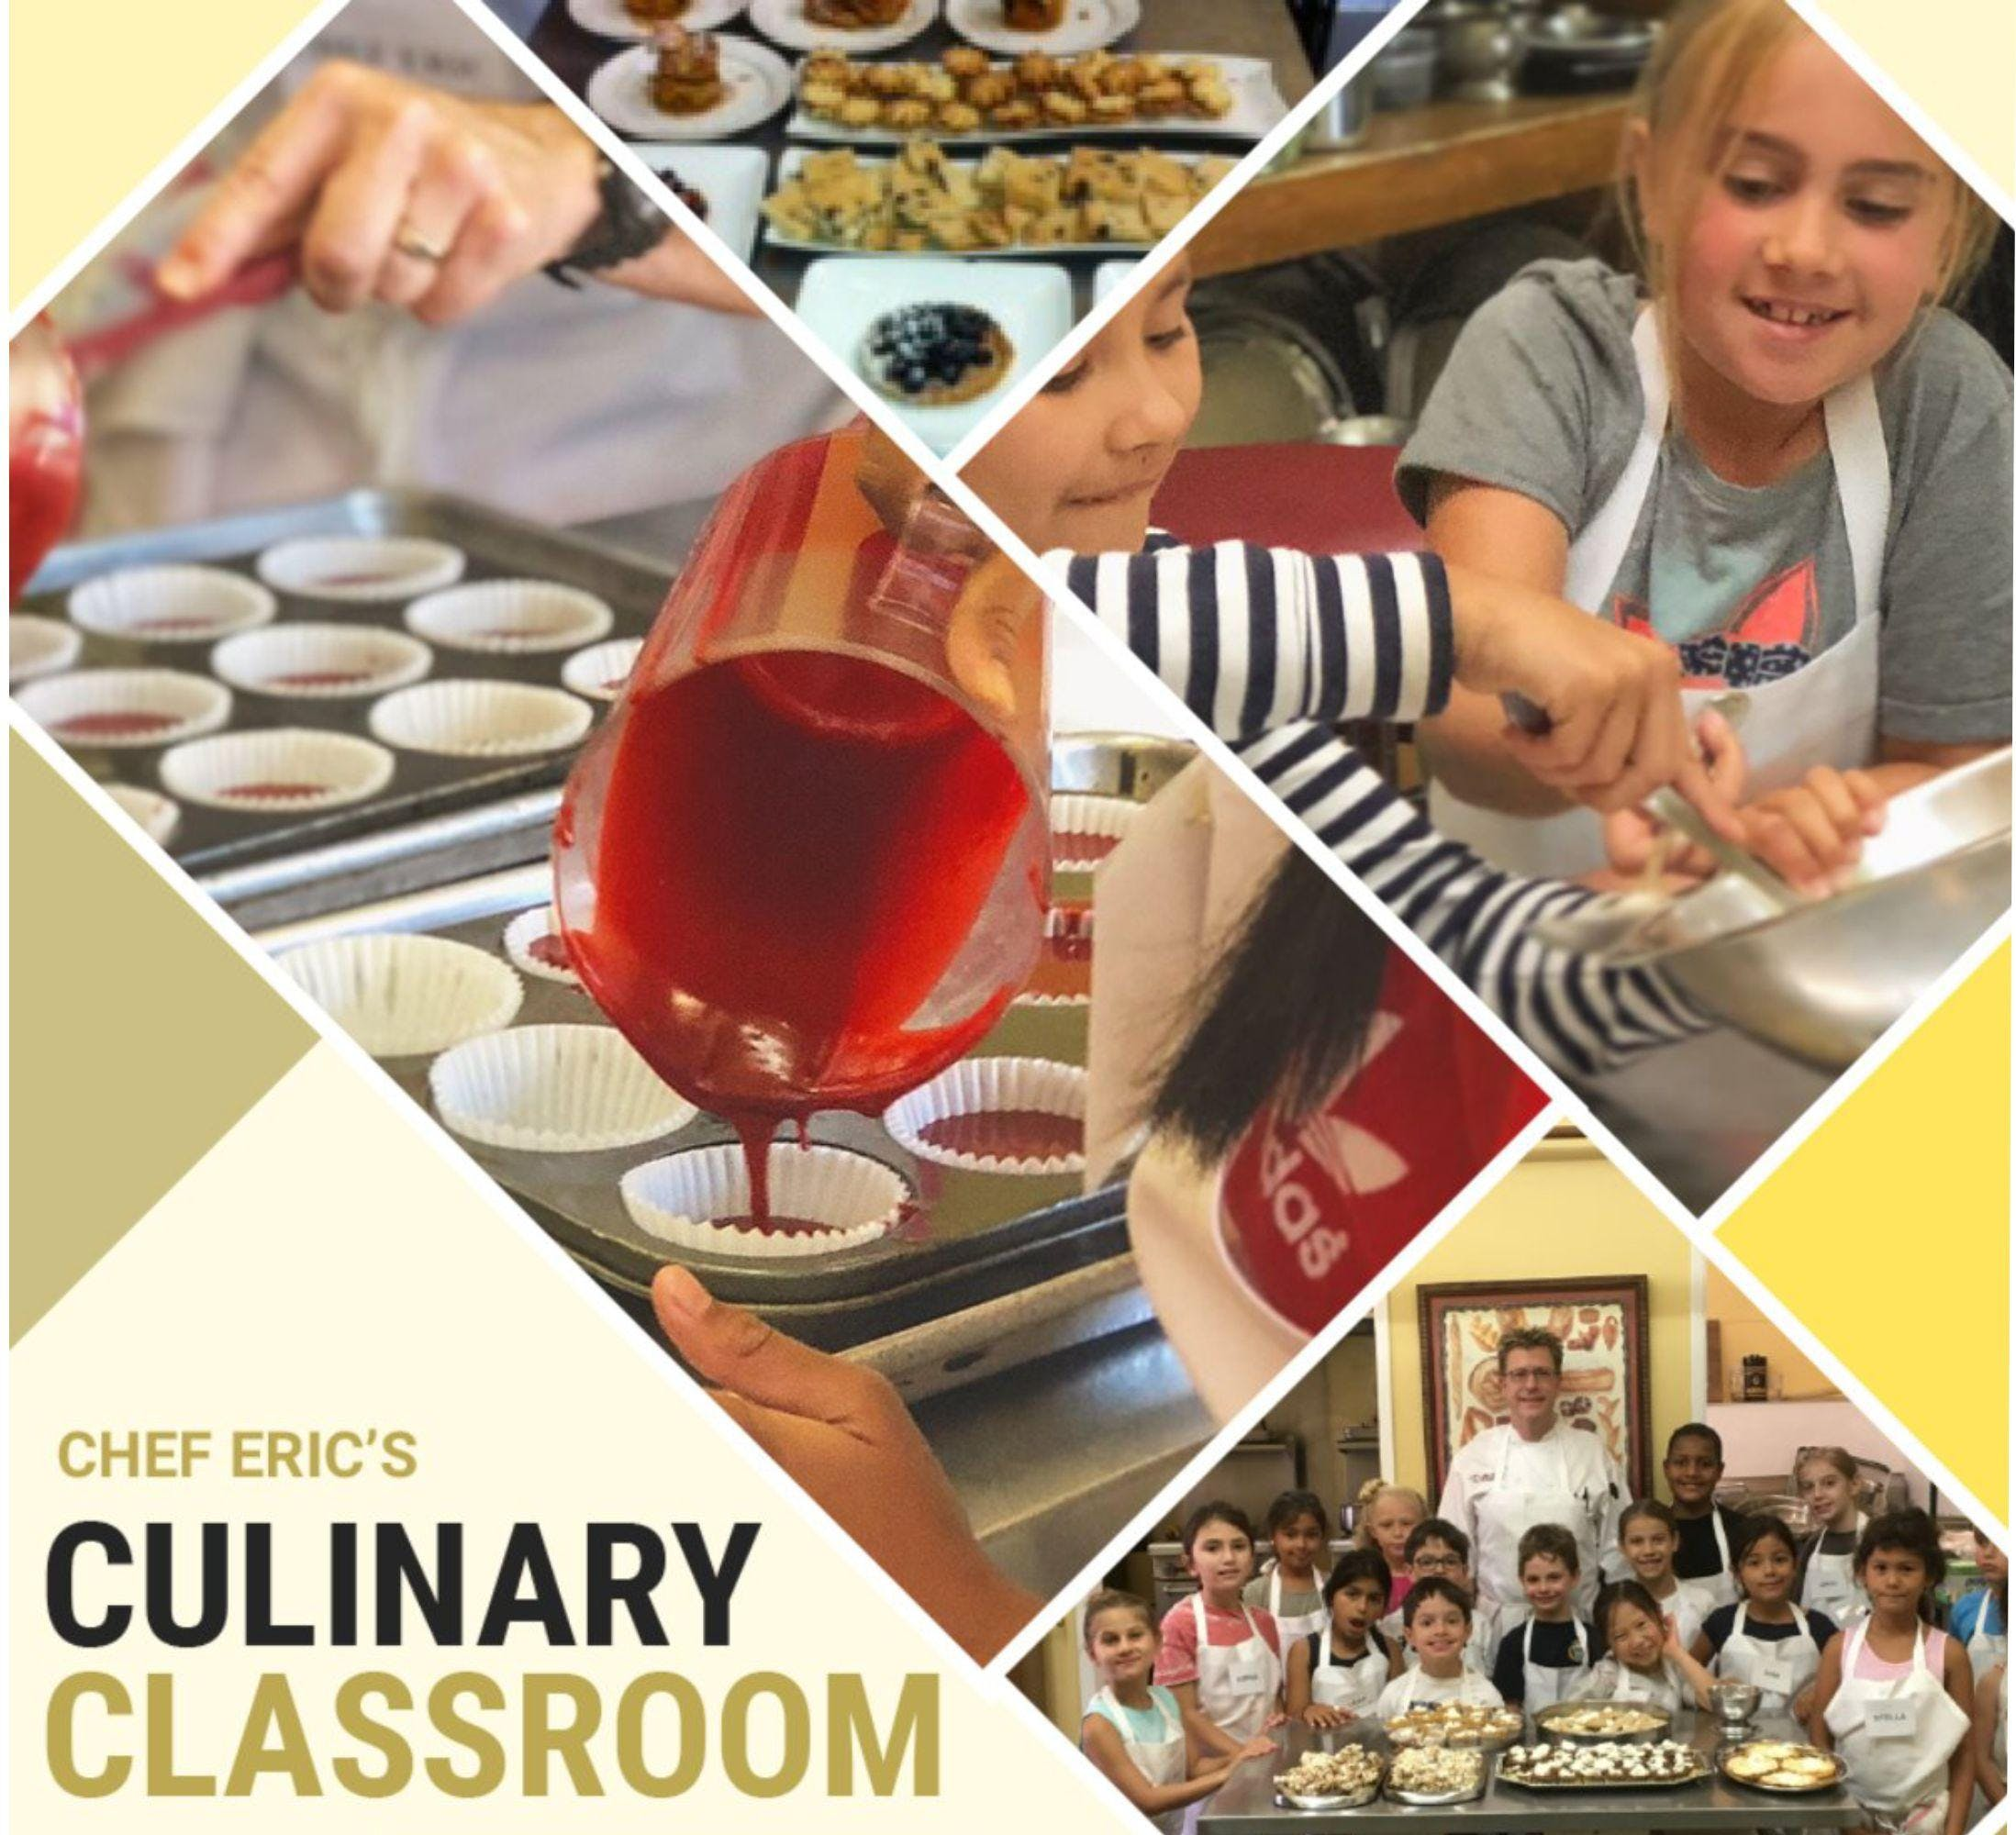 Kid's Summer Cooking and Baking Camps - Culinary Academy 4 - Mon-Thurs/July 22-25, 2019 - $425